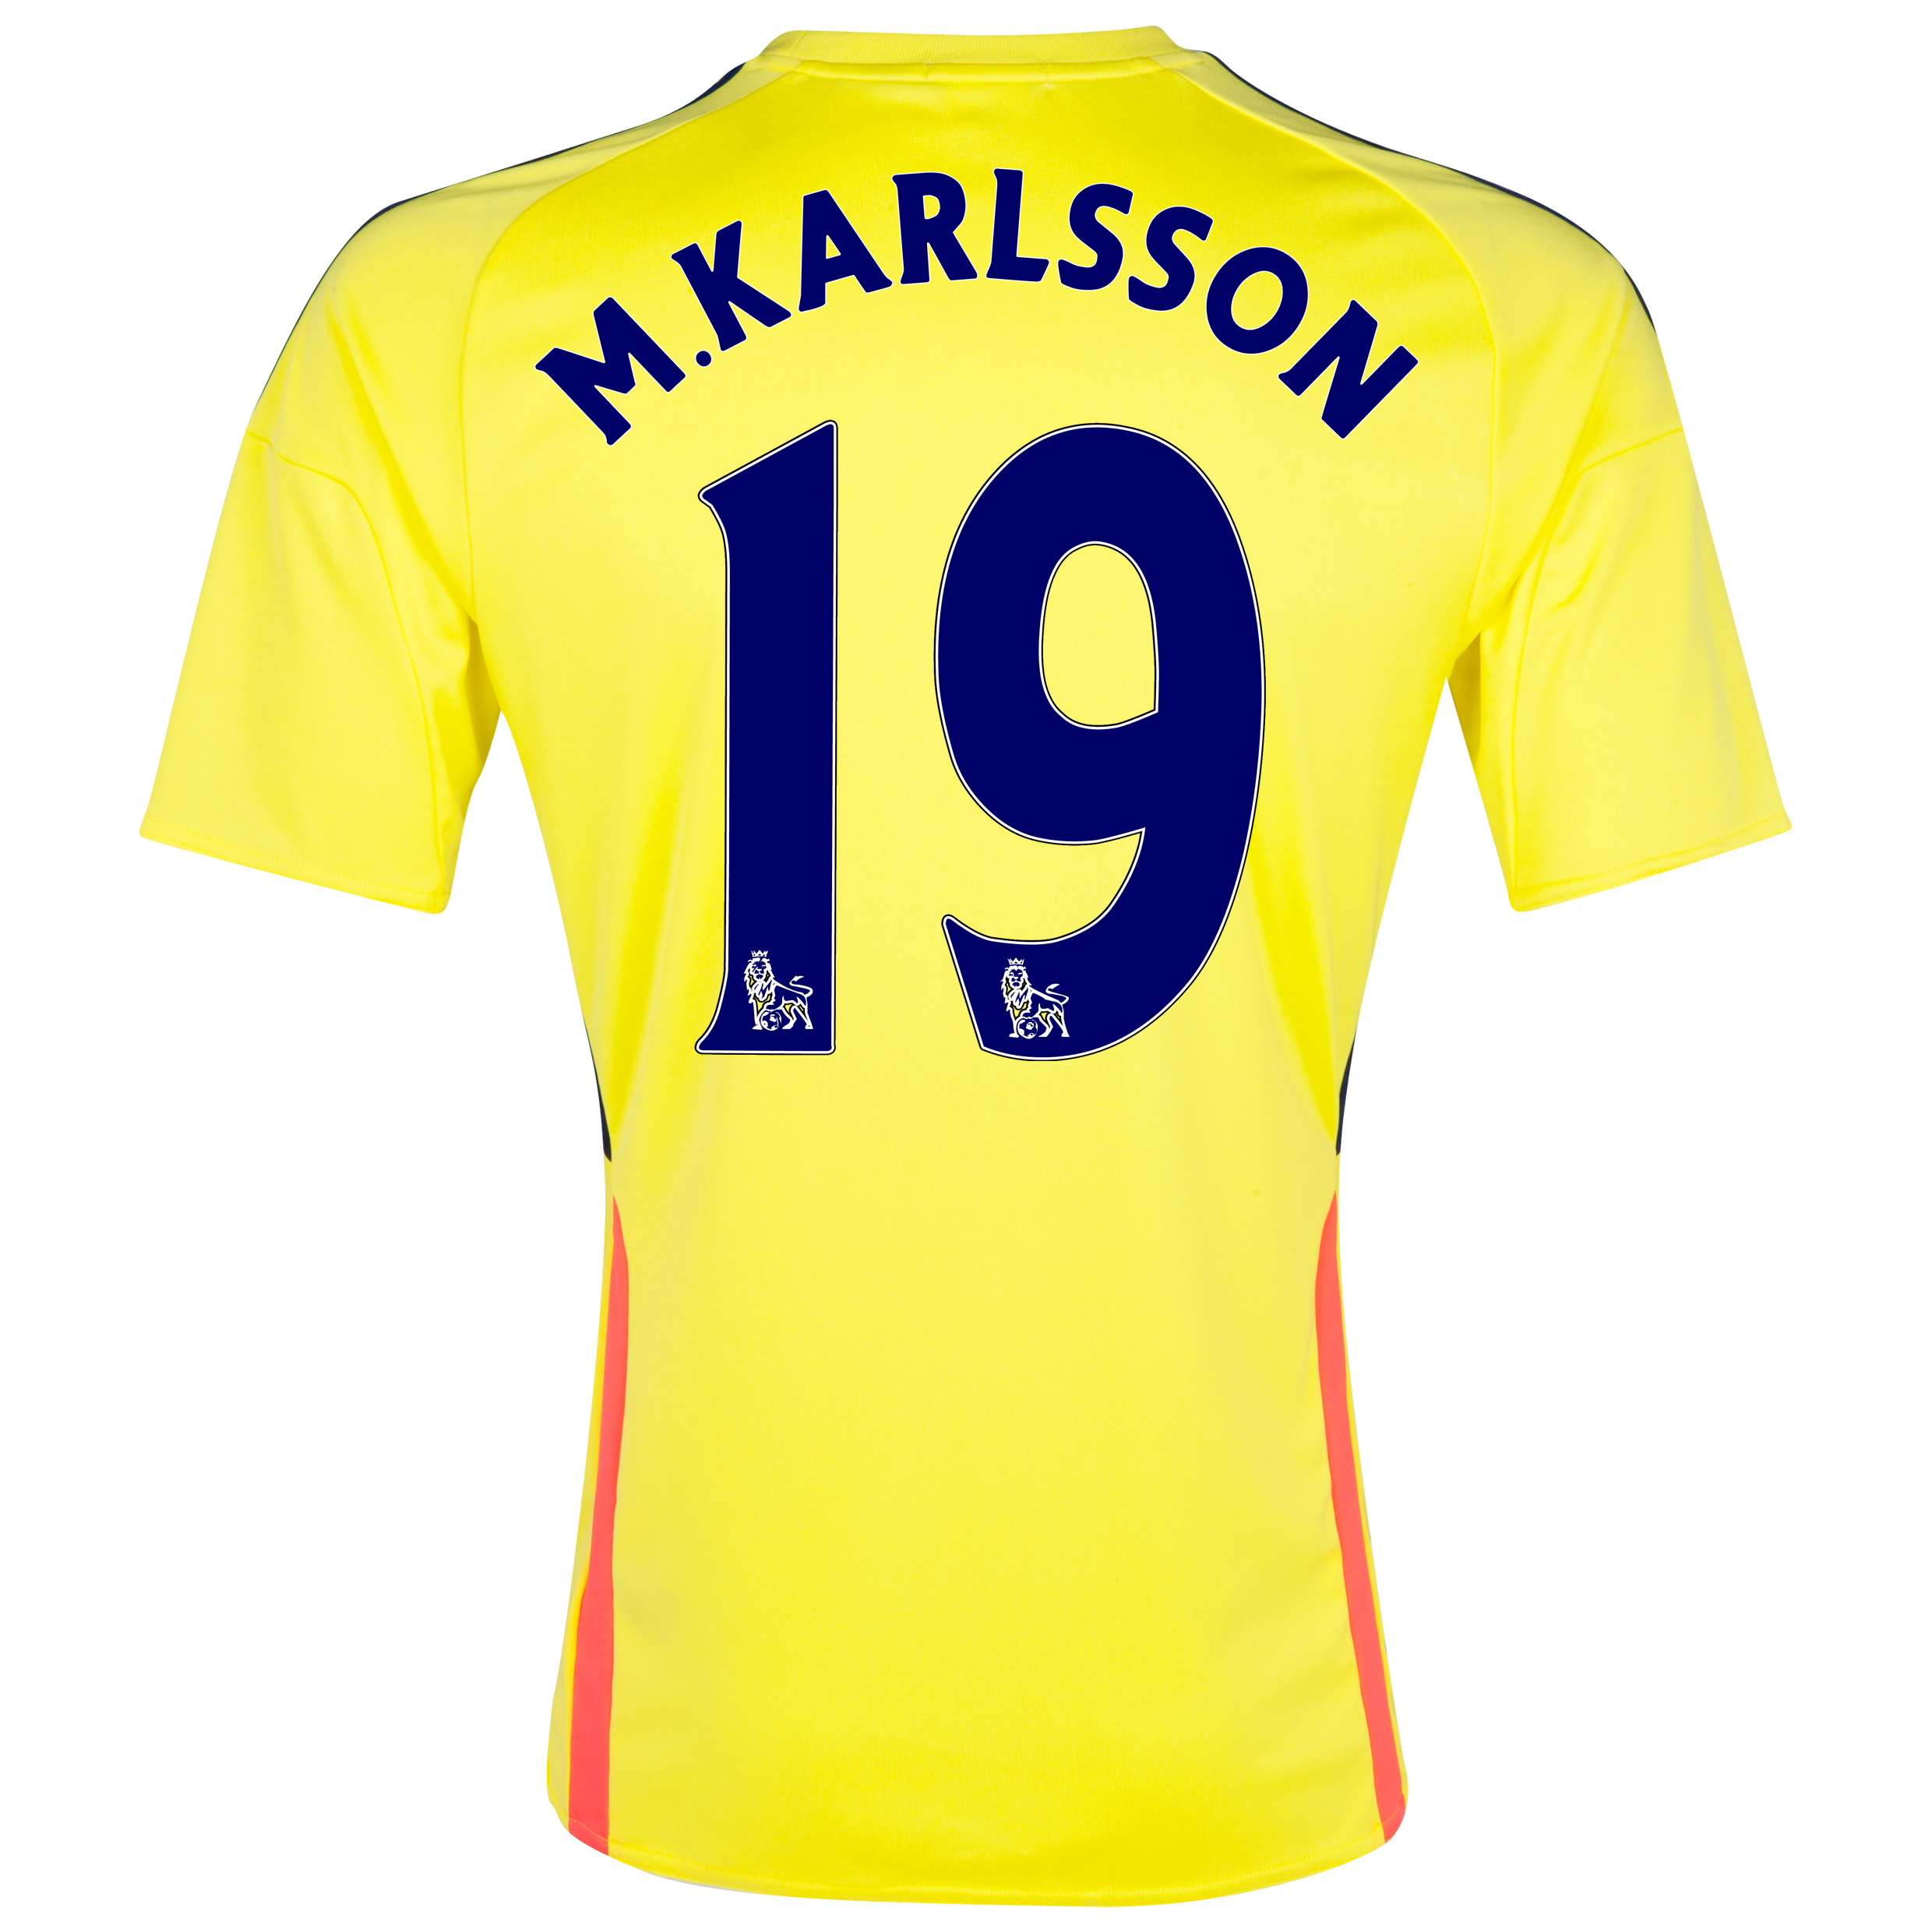 Sunderland Away Shirt 2013/14 - Junior with M.Karlsson 19 printing